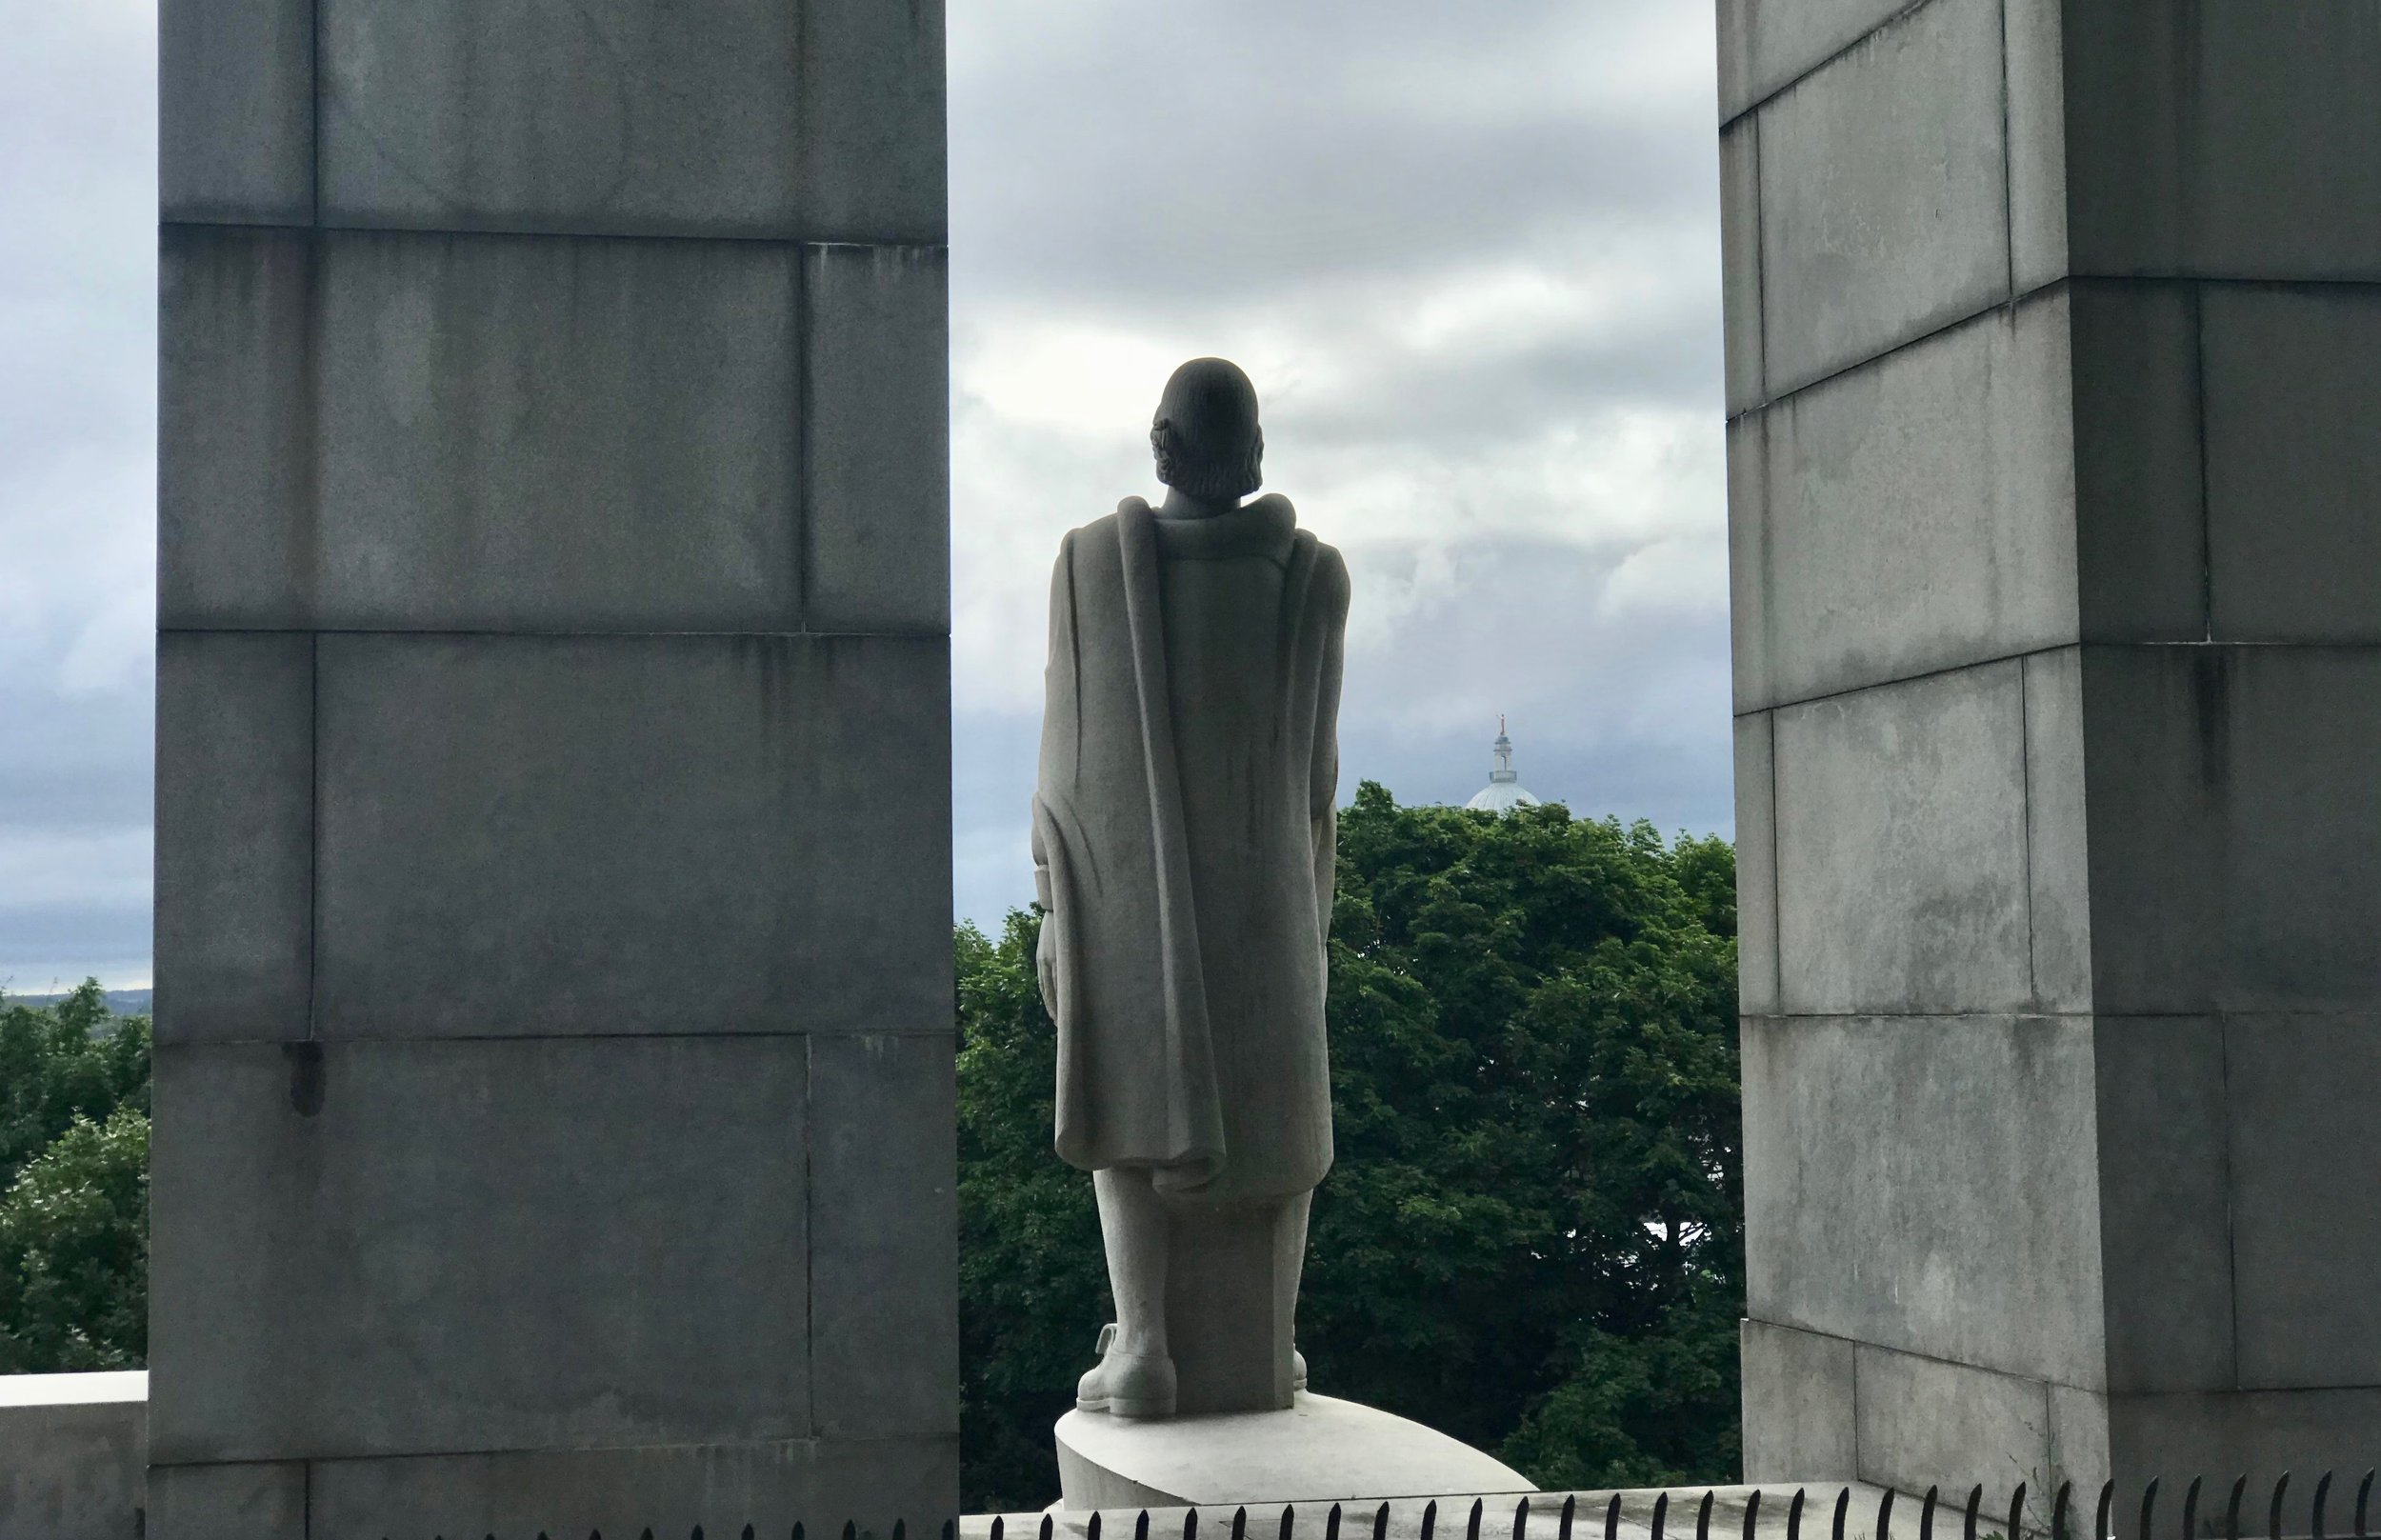 A statue representing Roger Williams (there is no historical description of his appearance) looks out over Providence, R.I., the city he founded as a refuge from religious persecution.